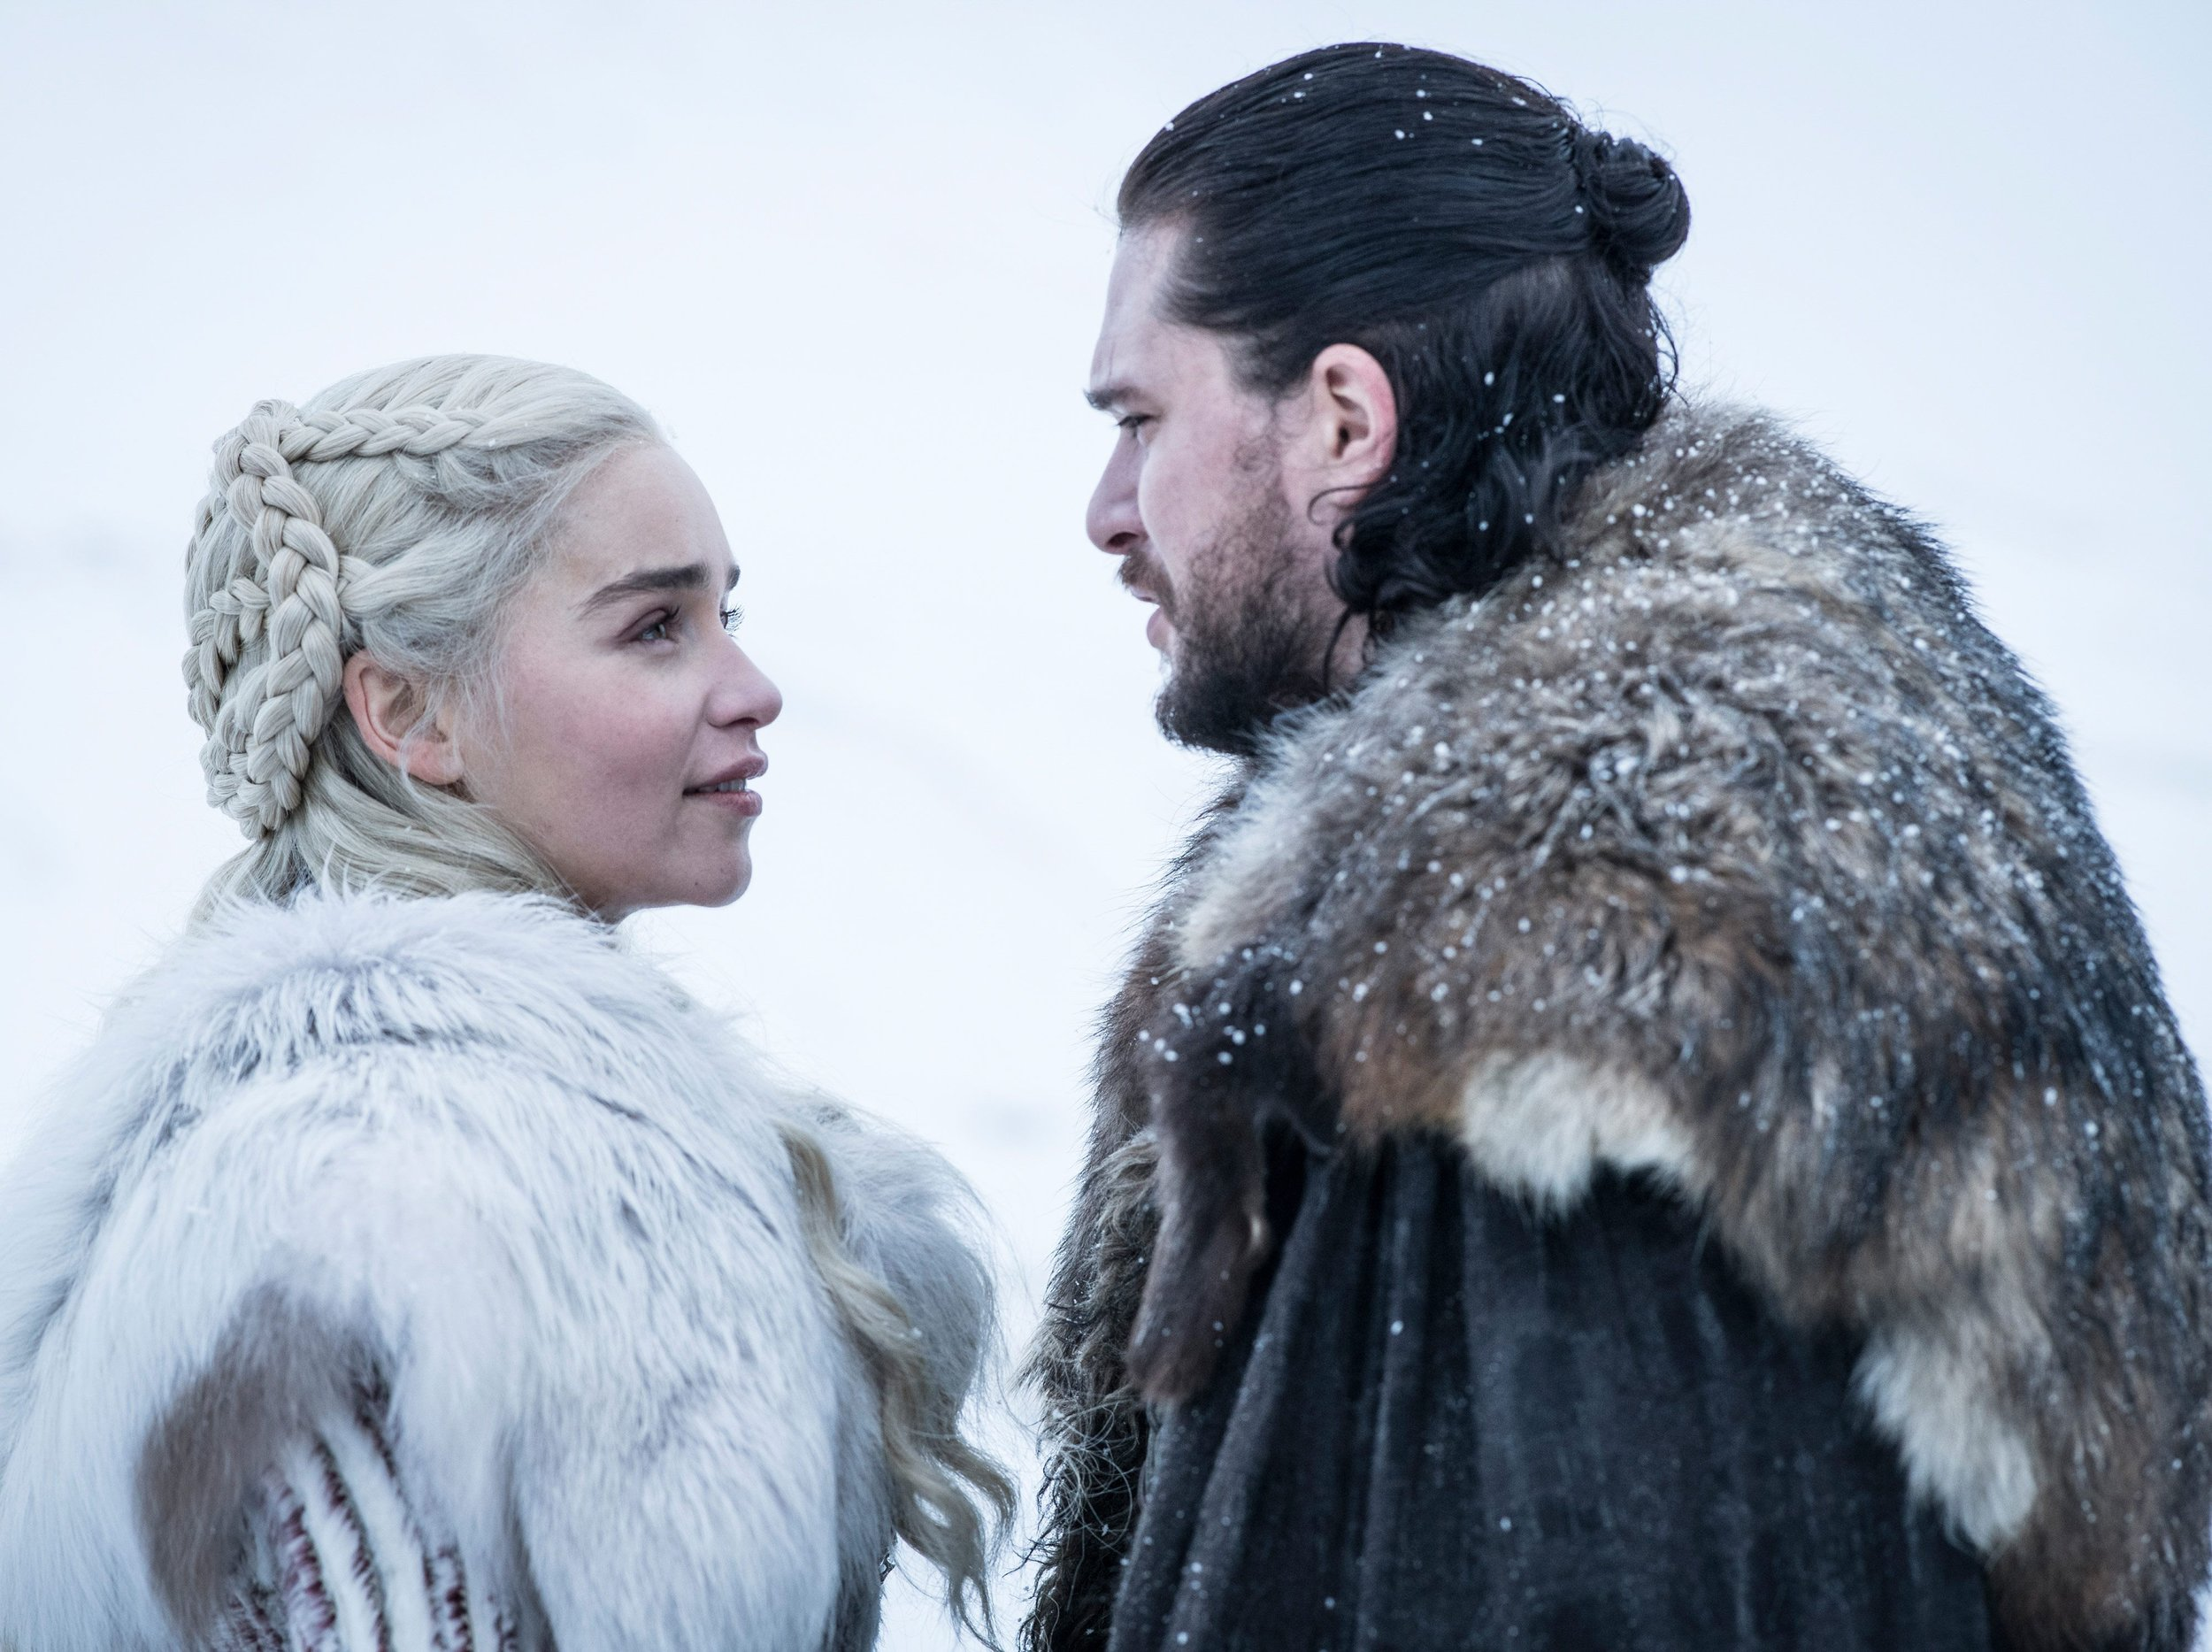 game-of-thrones-daenerys-jon-snow-1553188212.jpg